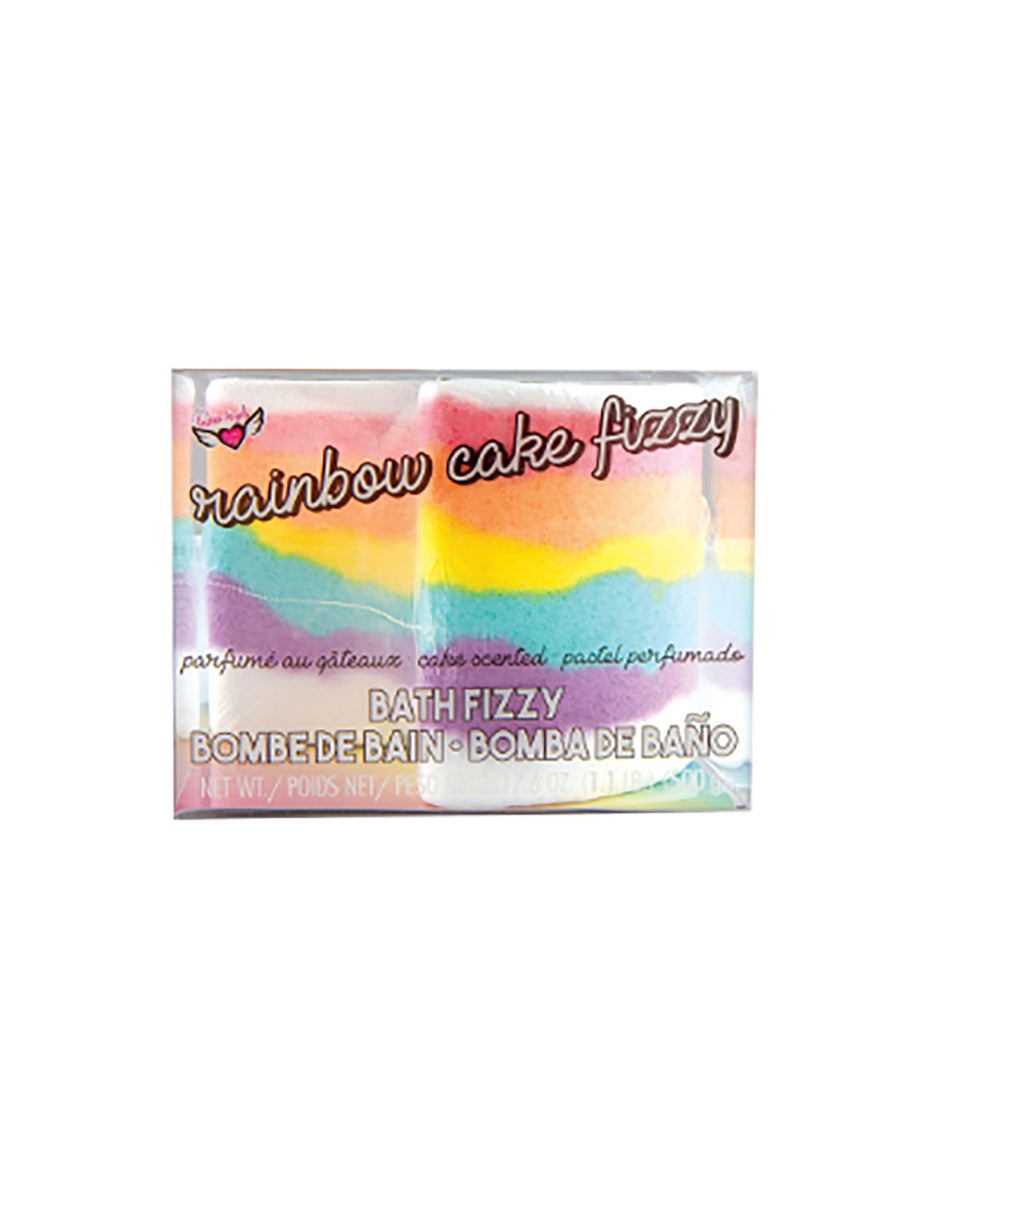 Fashion Angels Rainbow Cake Bath Fizzy